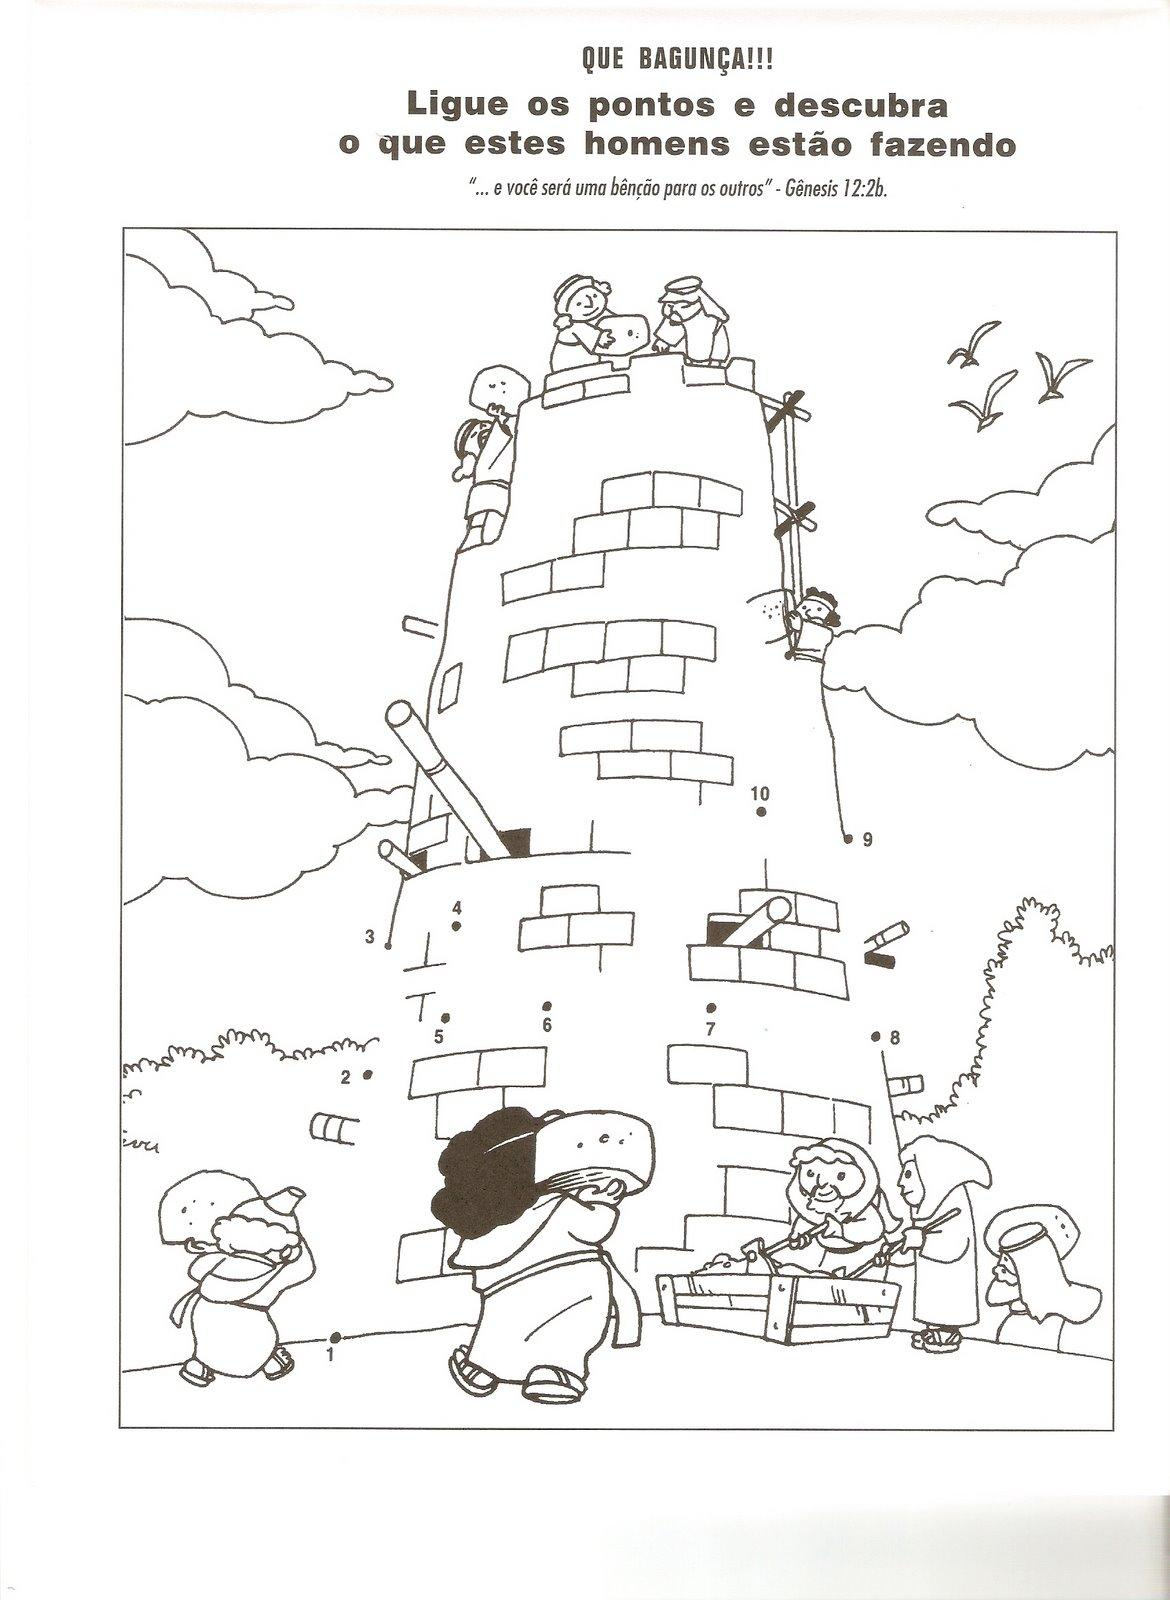 Tower of babel coloring pages - a-k-b.info